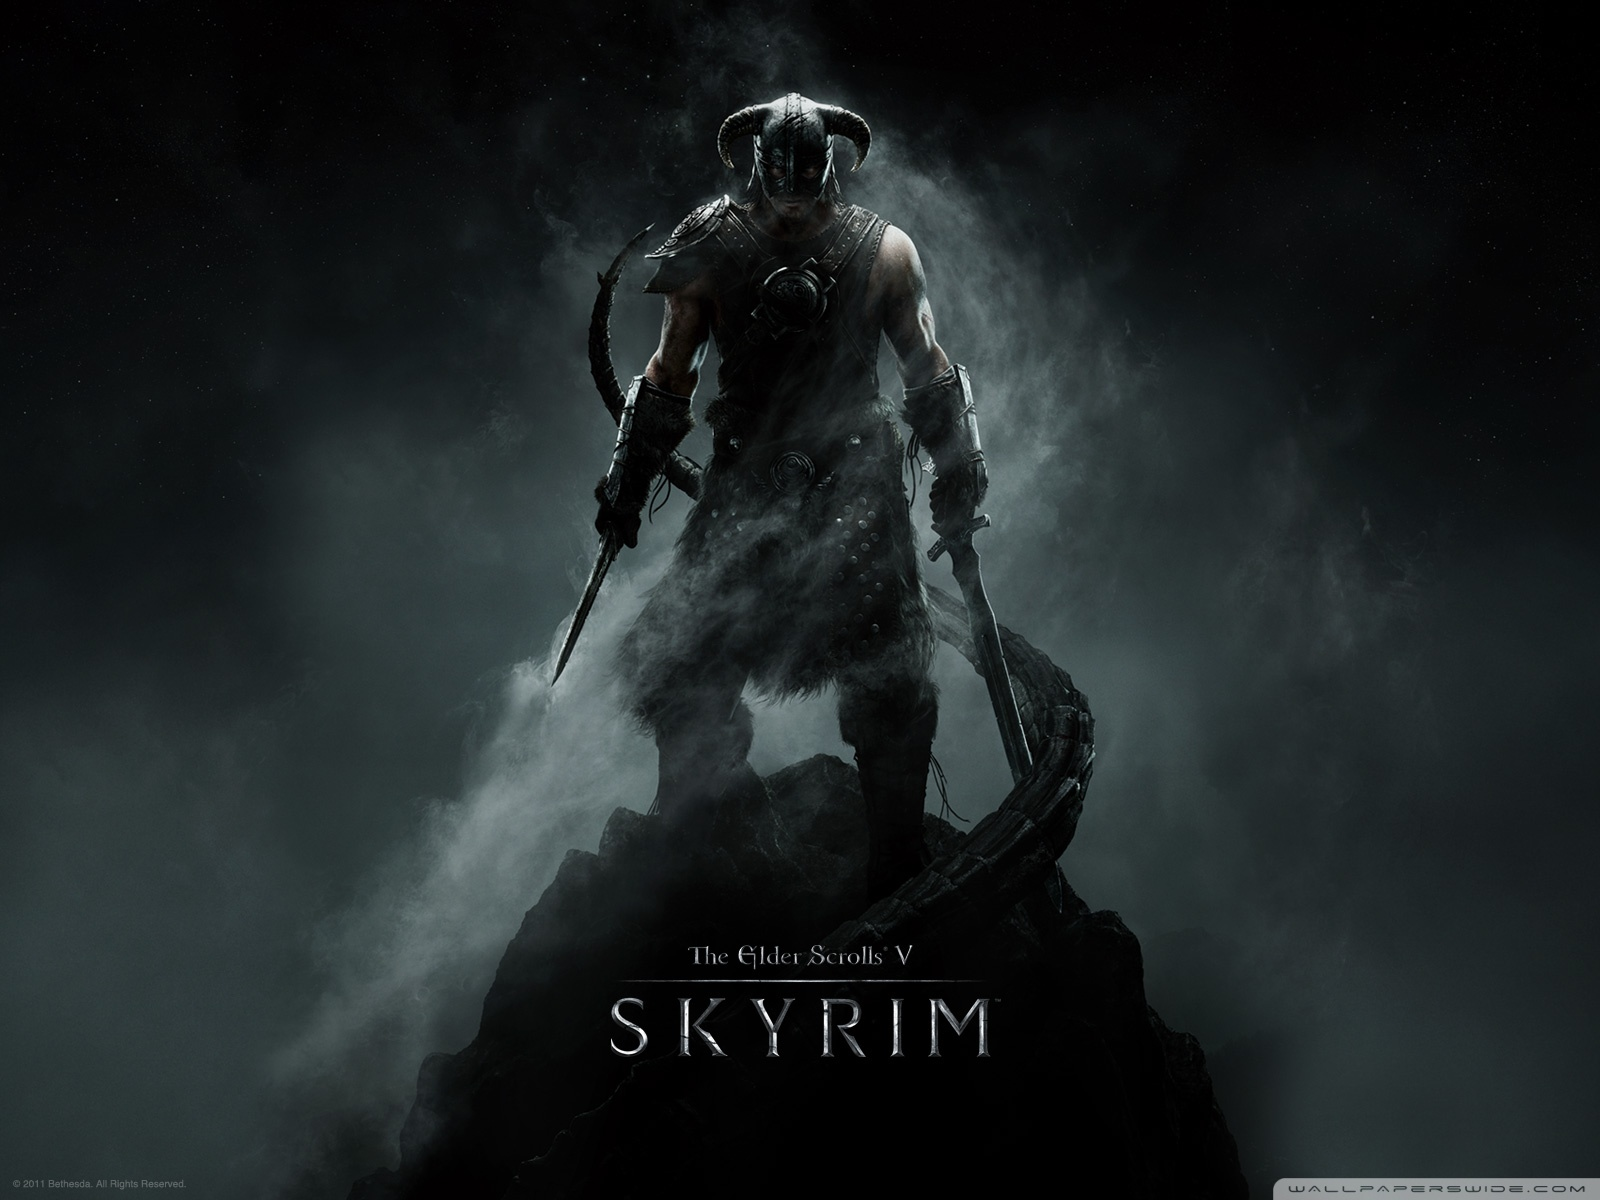 The Elder Scrolls V - Skyrim HD desktop wallpaper : Widescreen